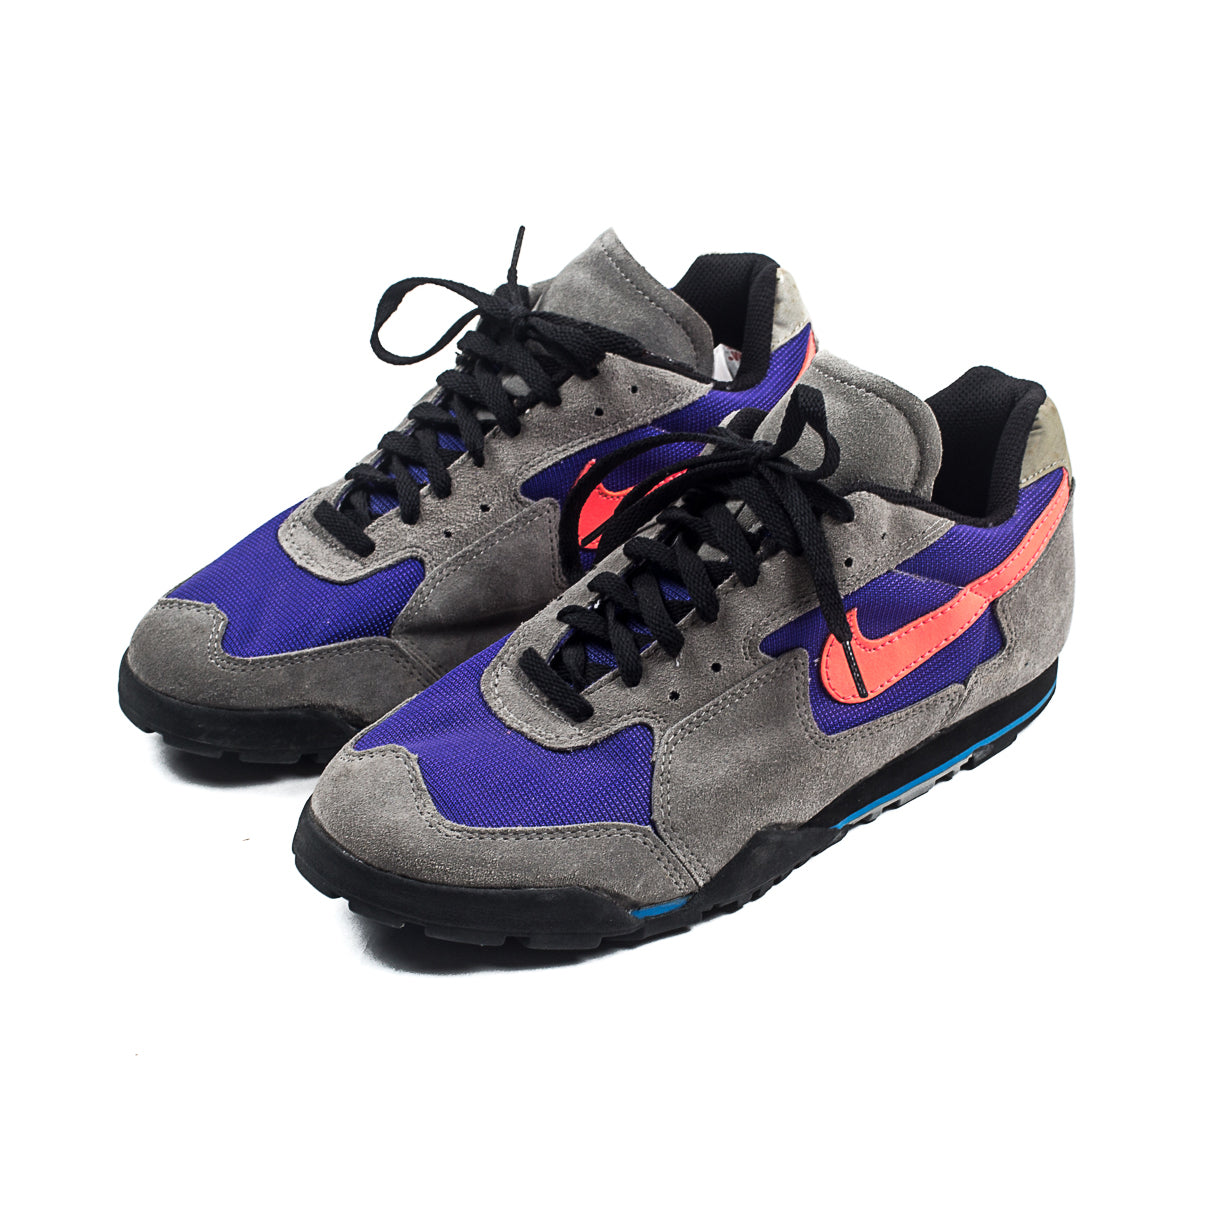 san francisco 9915f 40952 Load image into Gallery viewer, Vintage Nike ACG Echelon Suede 1992  Deadstock ...